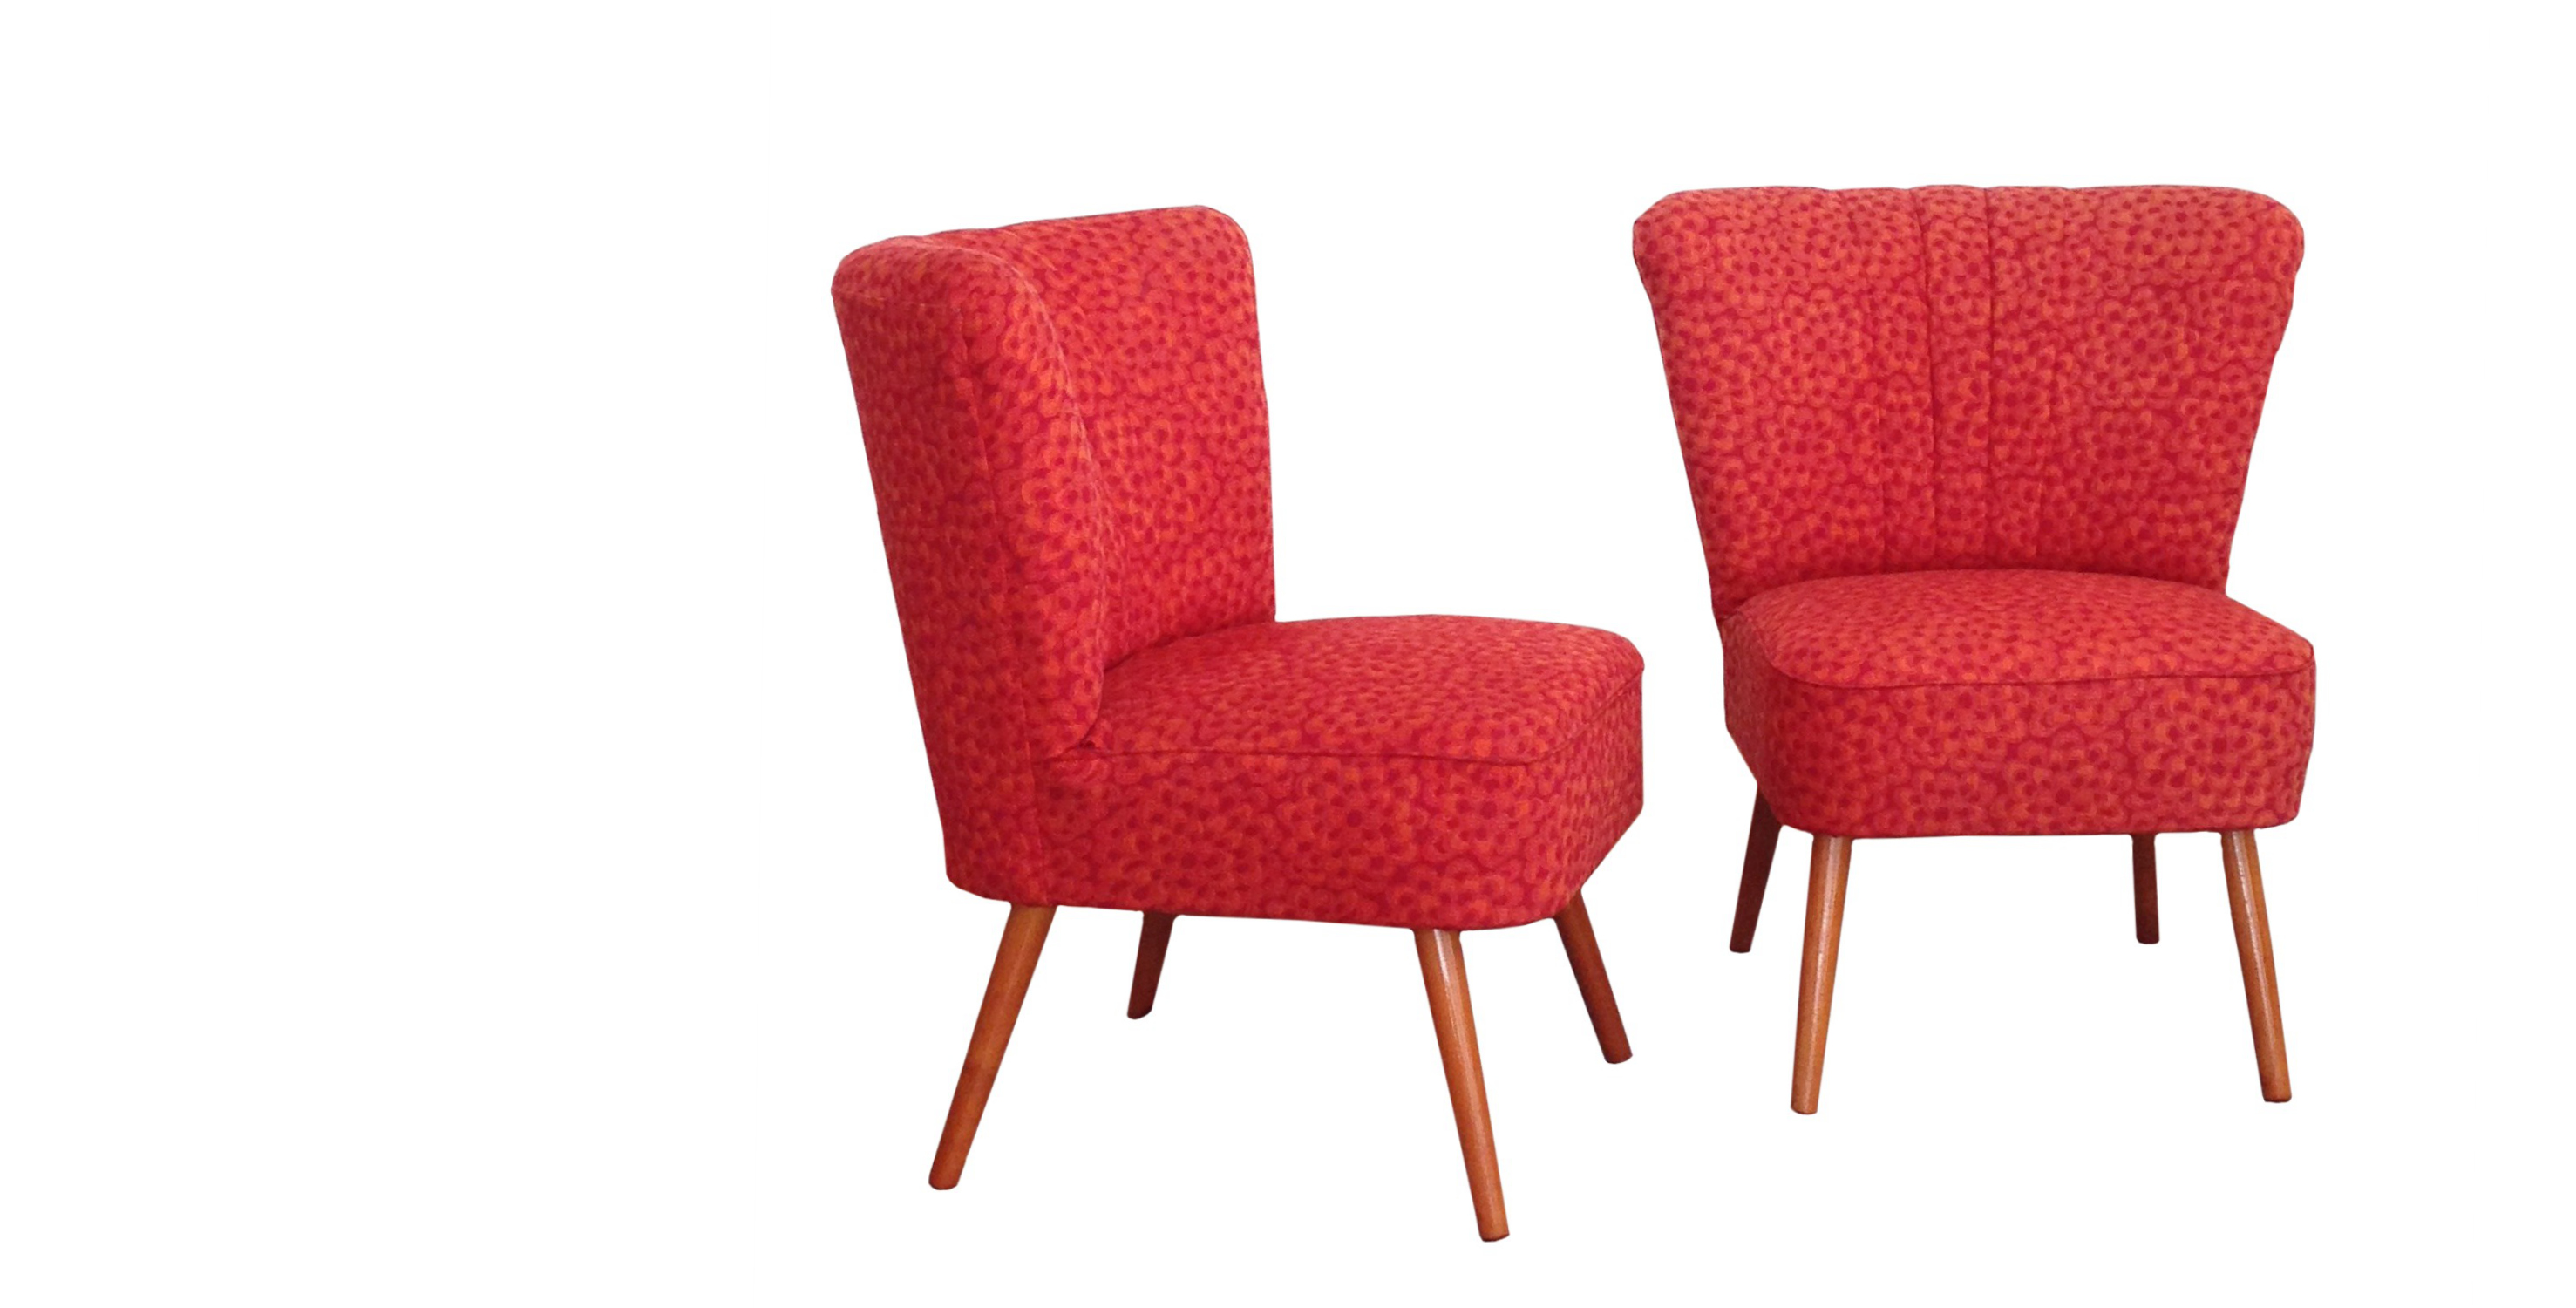 Soldes Fauteuil Amazing Chaises Lafuma Soldes Fauteuil Relax Lafuma